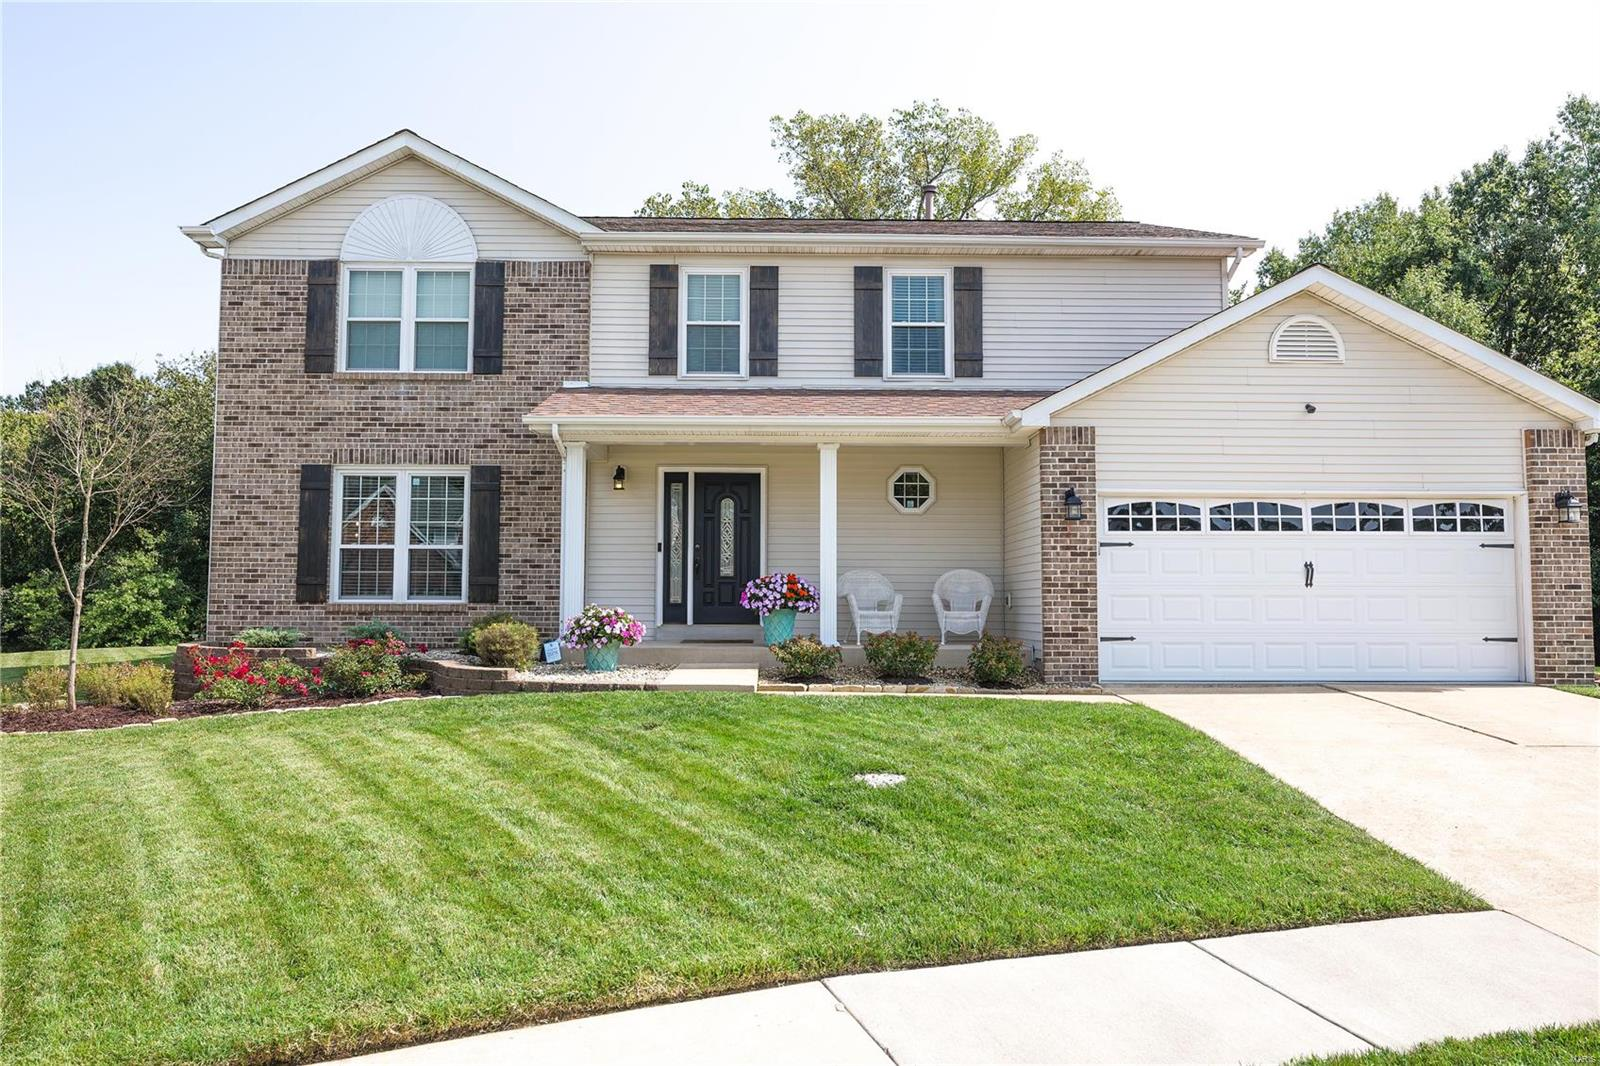 2851 Belle Terre Property Photo - St Louis, MO real estate listing